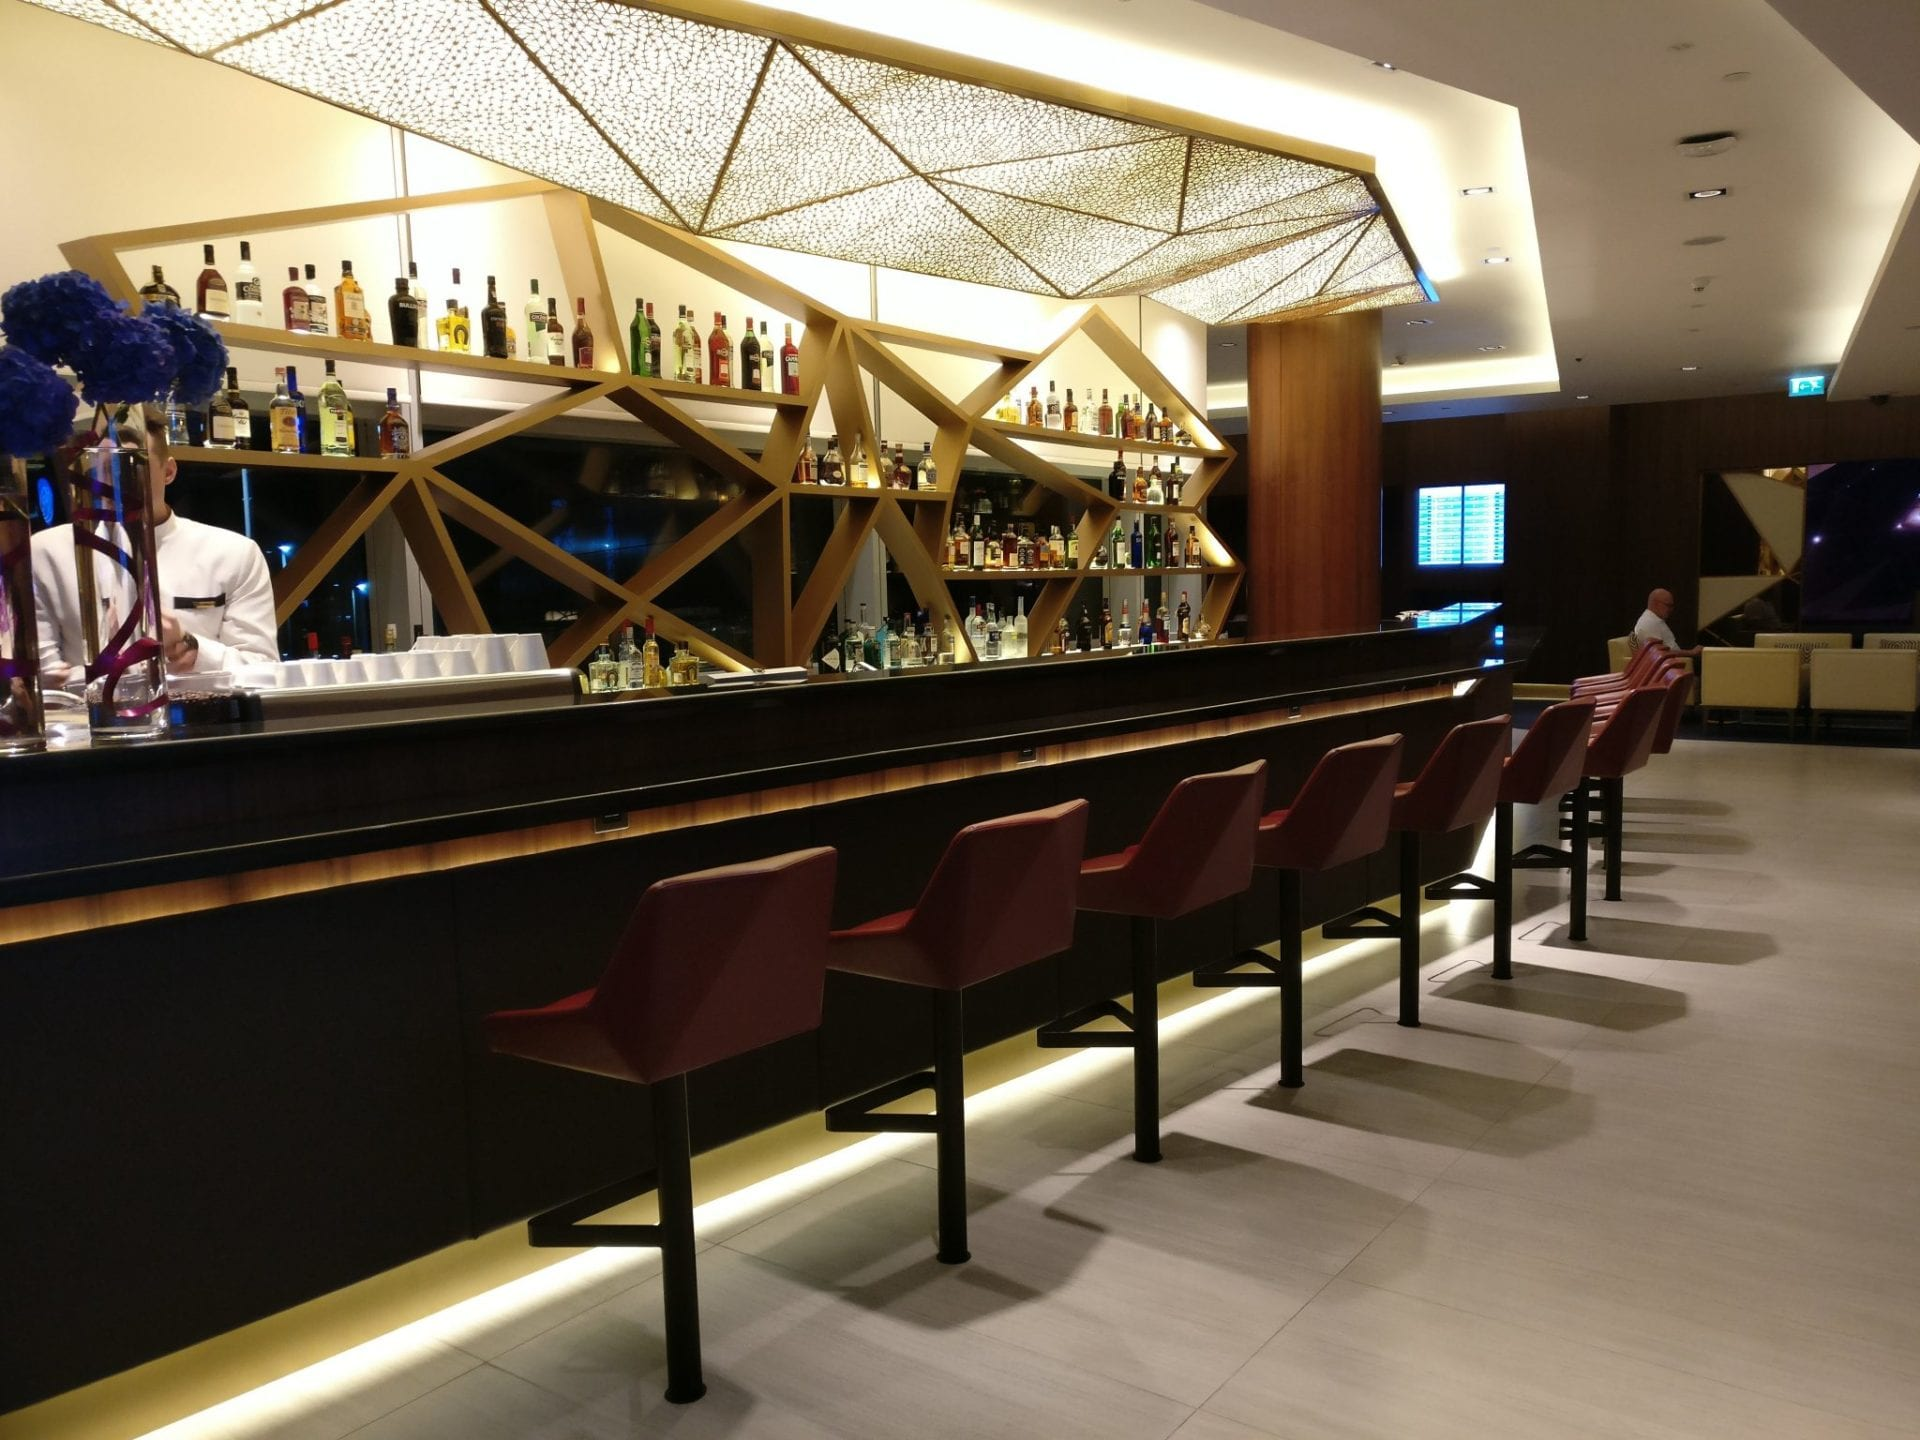 Etihad Airways First Class Lounge Abu Dhabi